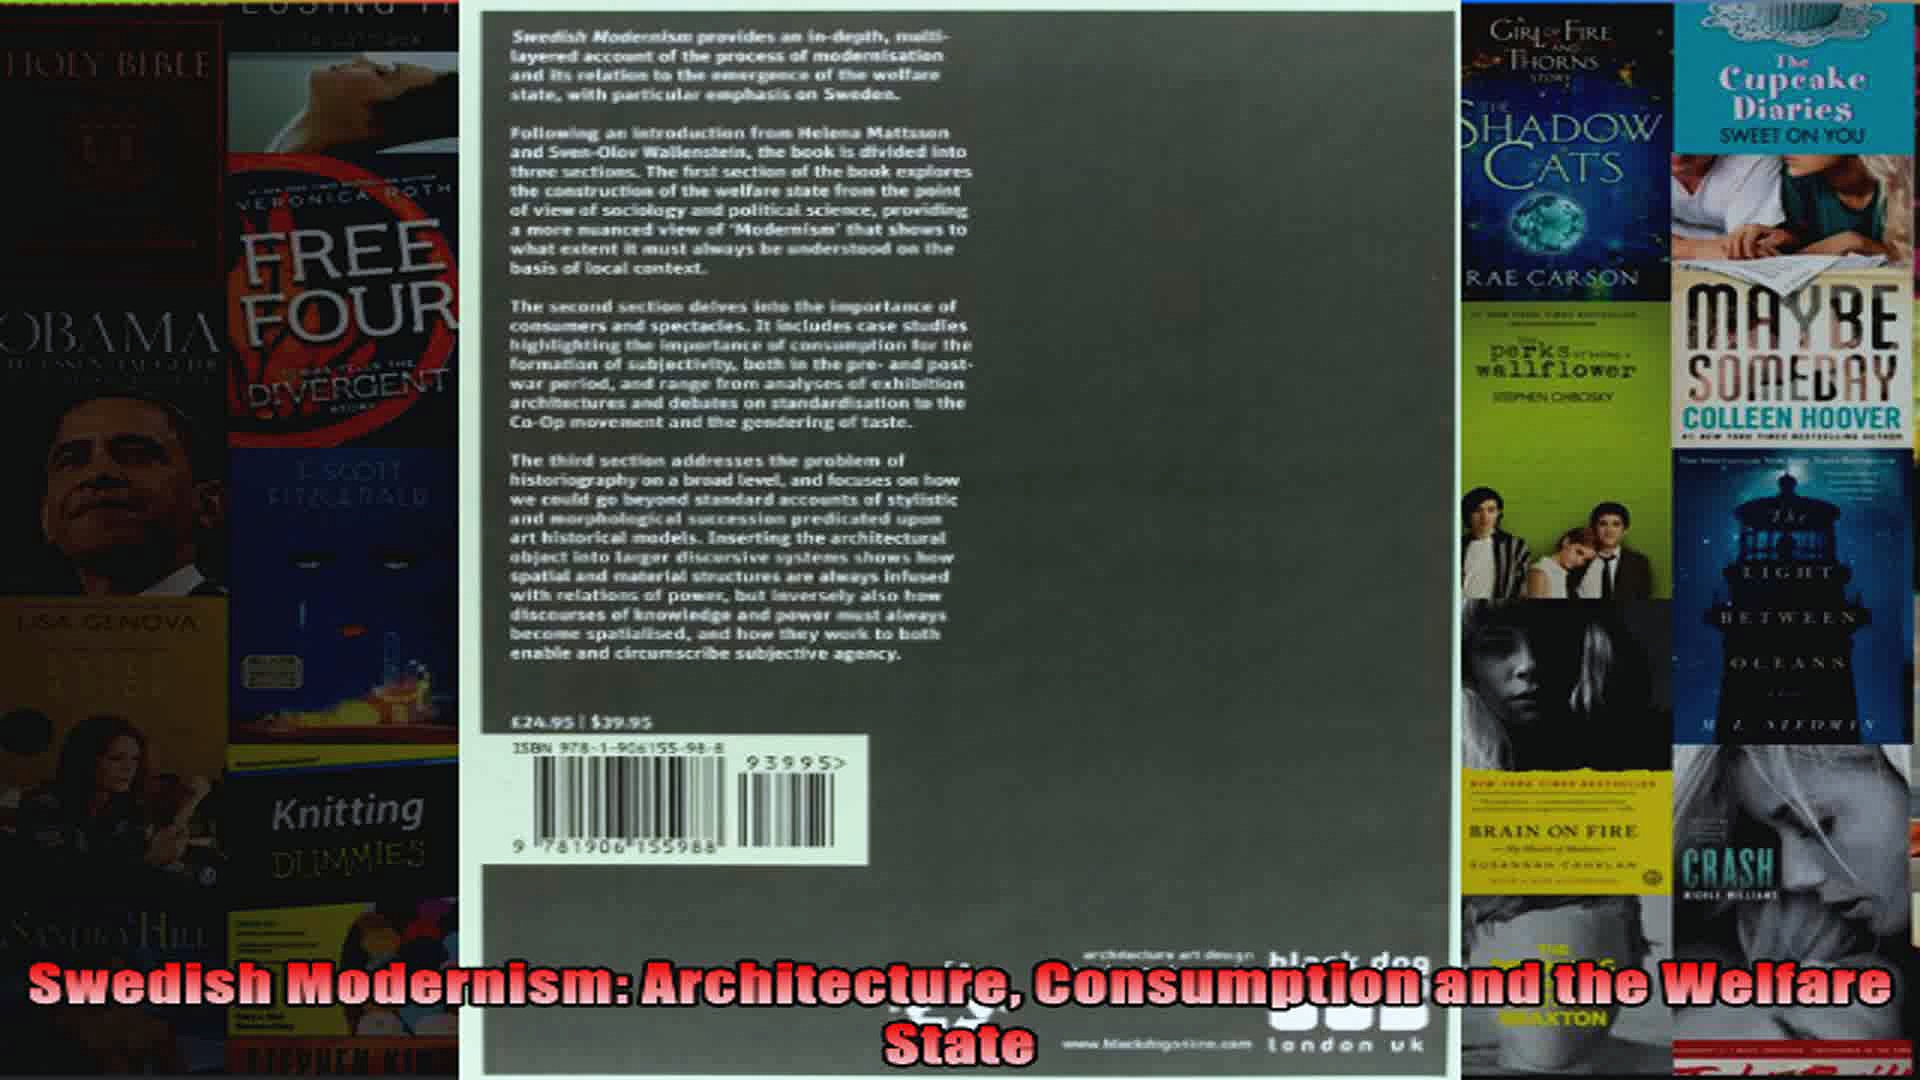 Swedish Modernism Architecture Consumption and the Welfare State